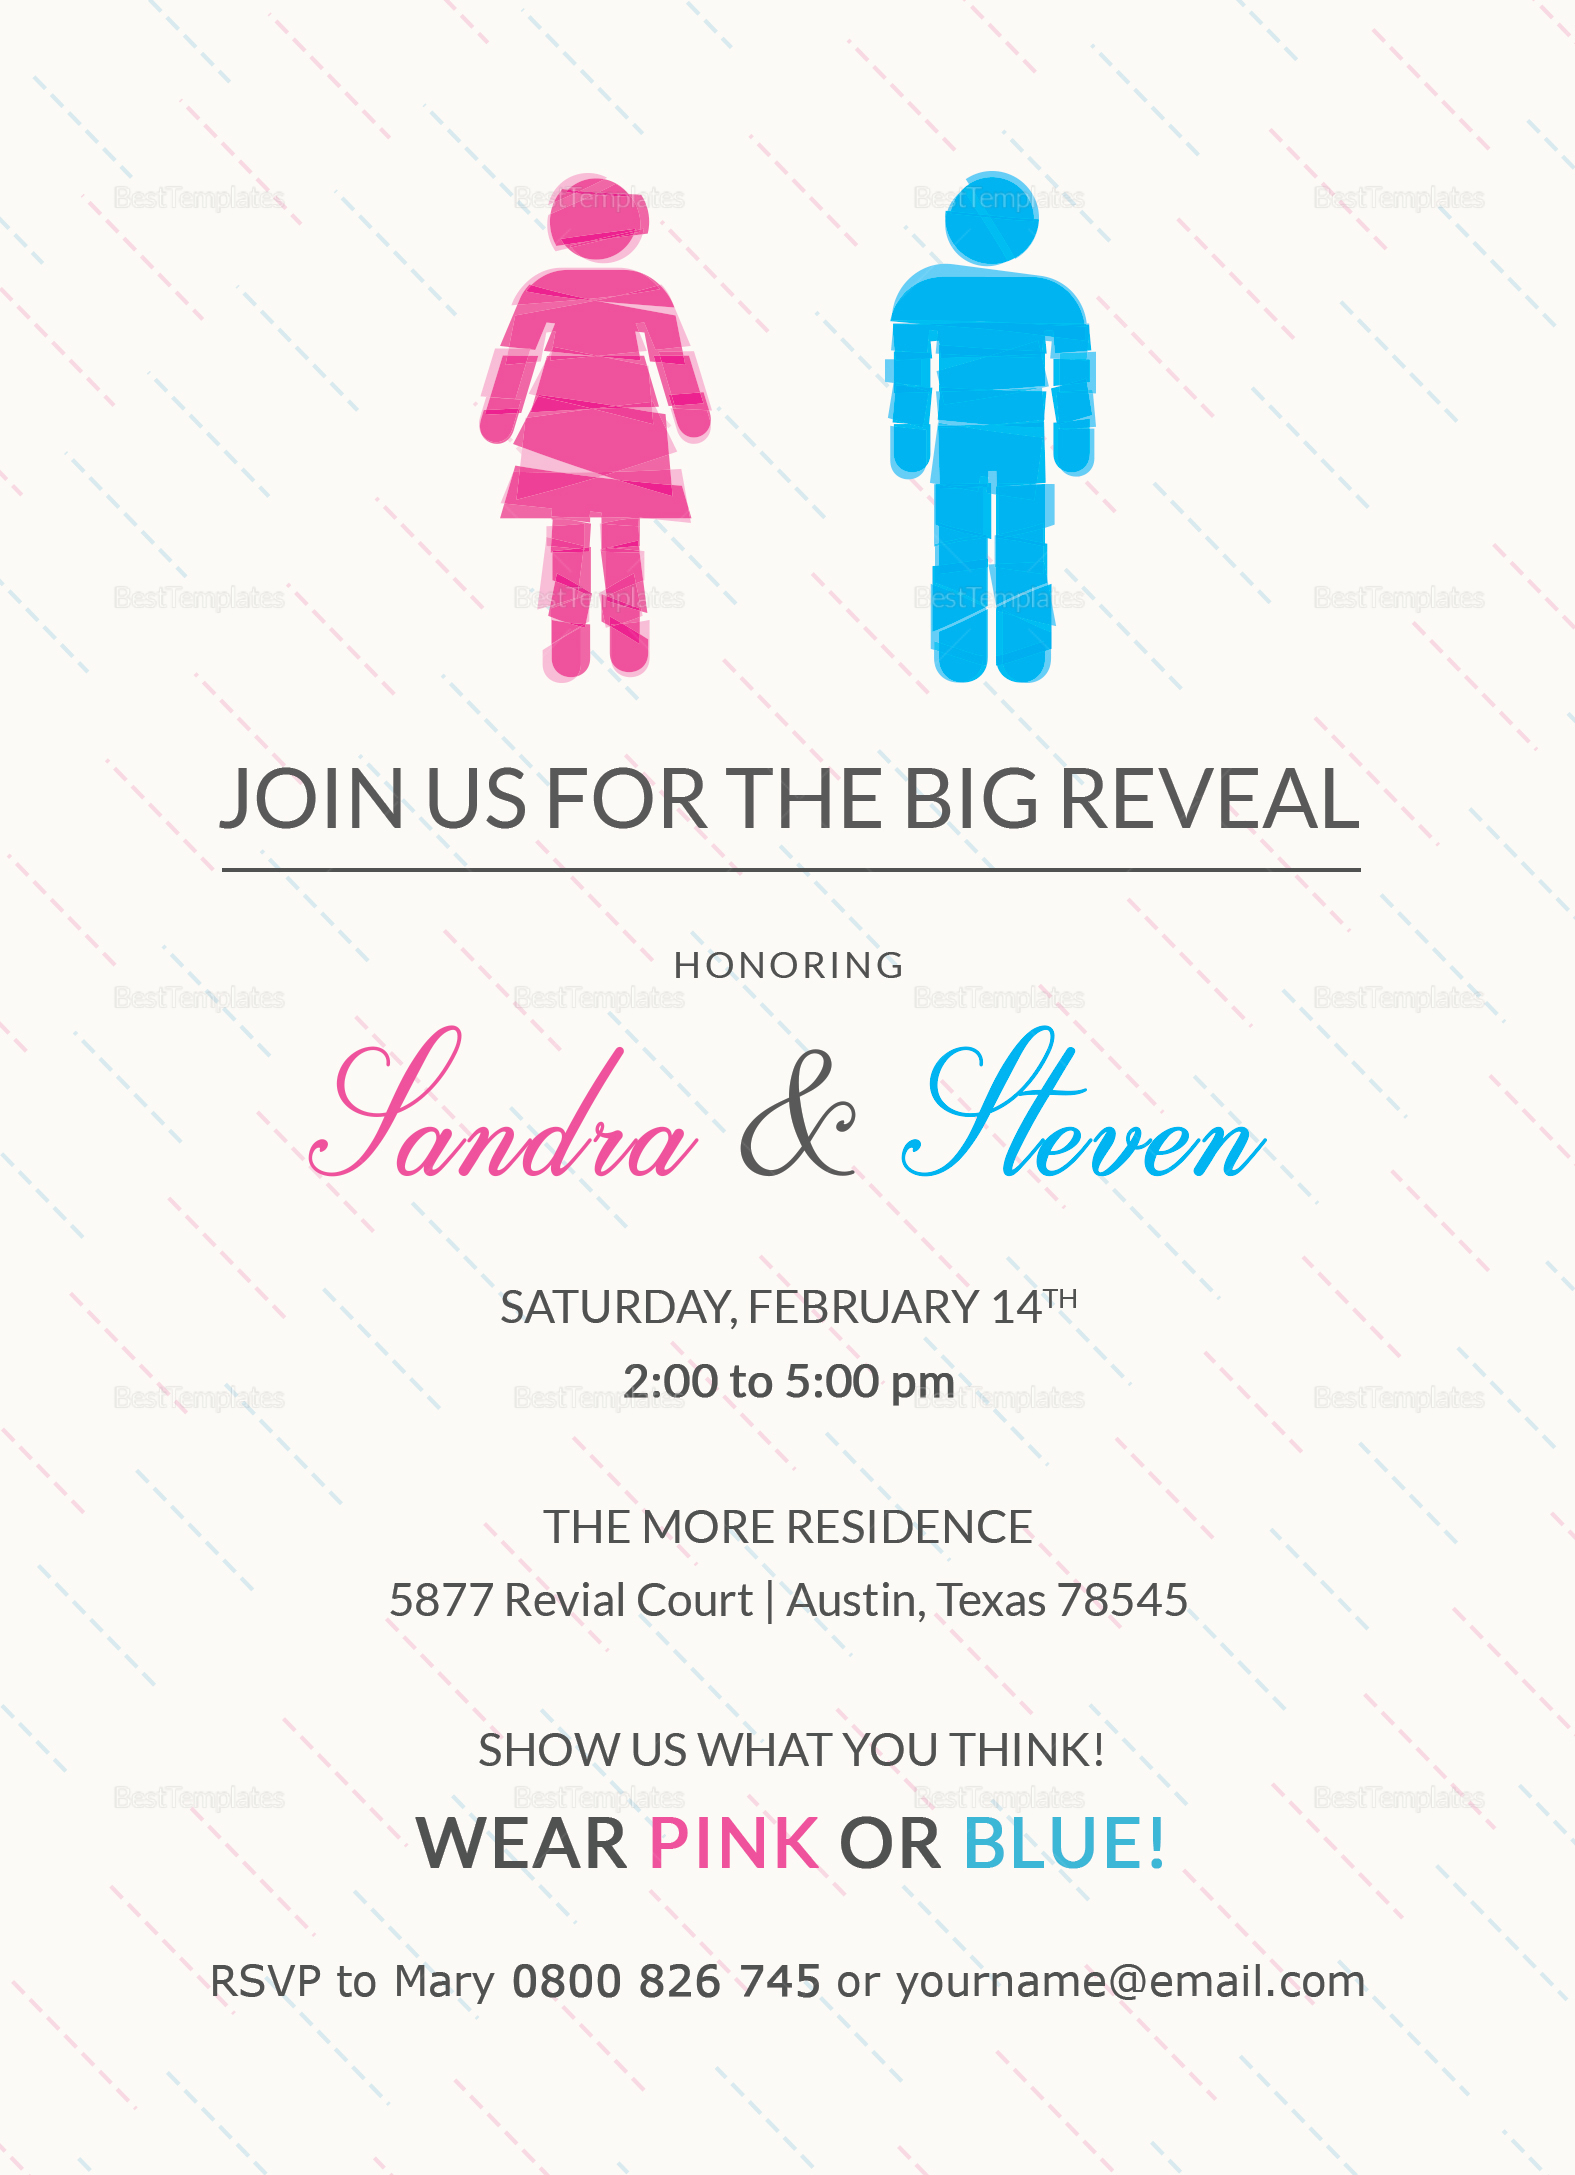 Gender Reveal Invitation Design